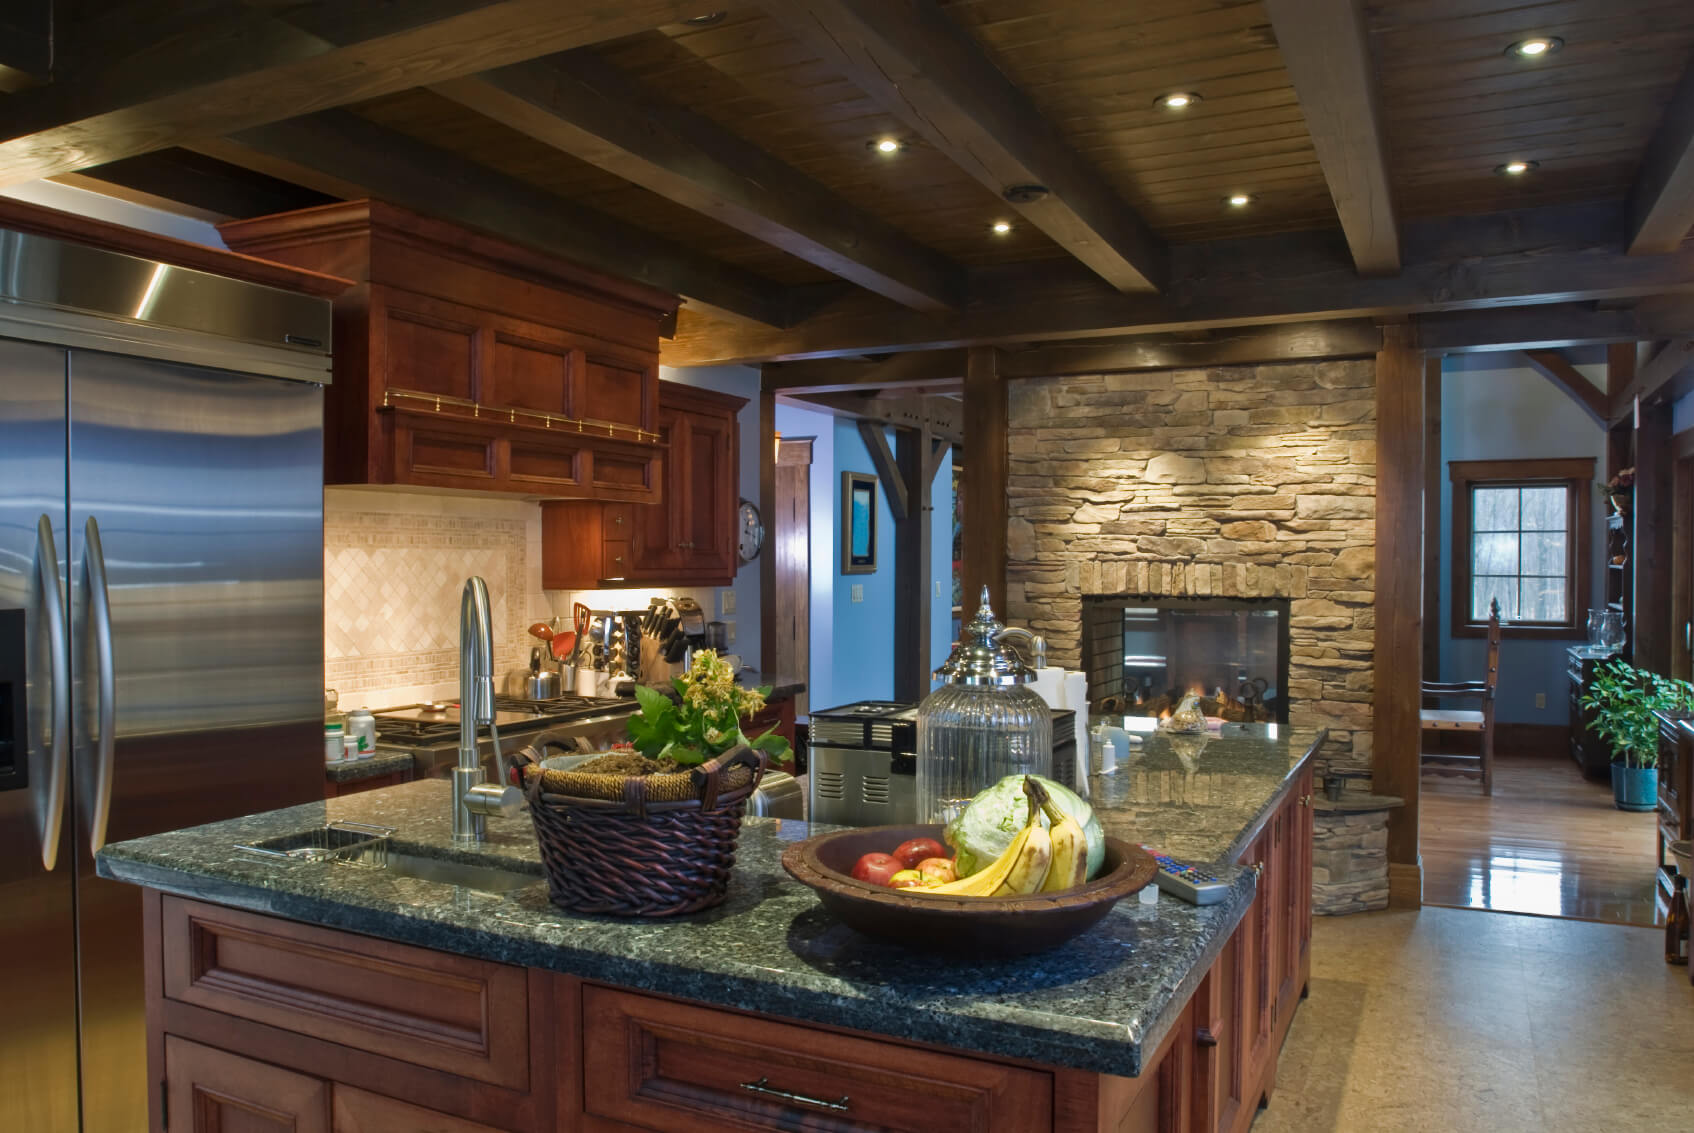 This is a dark kitchen with dark brown wooden cabinetry on its kitchen island and the wooden structure that houses the oven and fridge. These are matched by the dark wooden ceiling with exposed wooden beams and are all complemented by the textured stone fireplace.